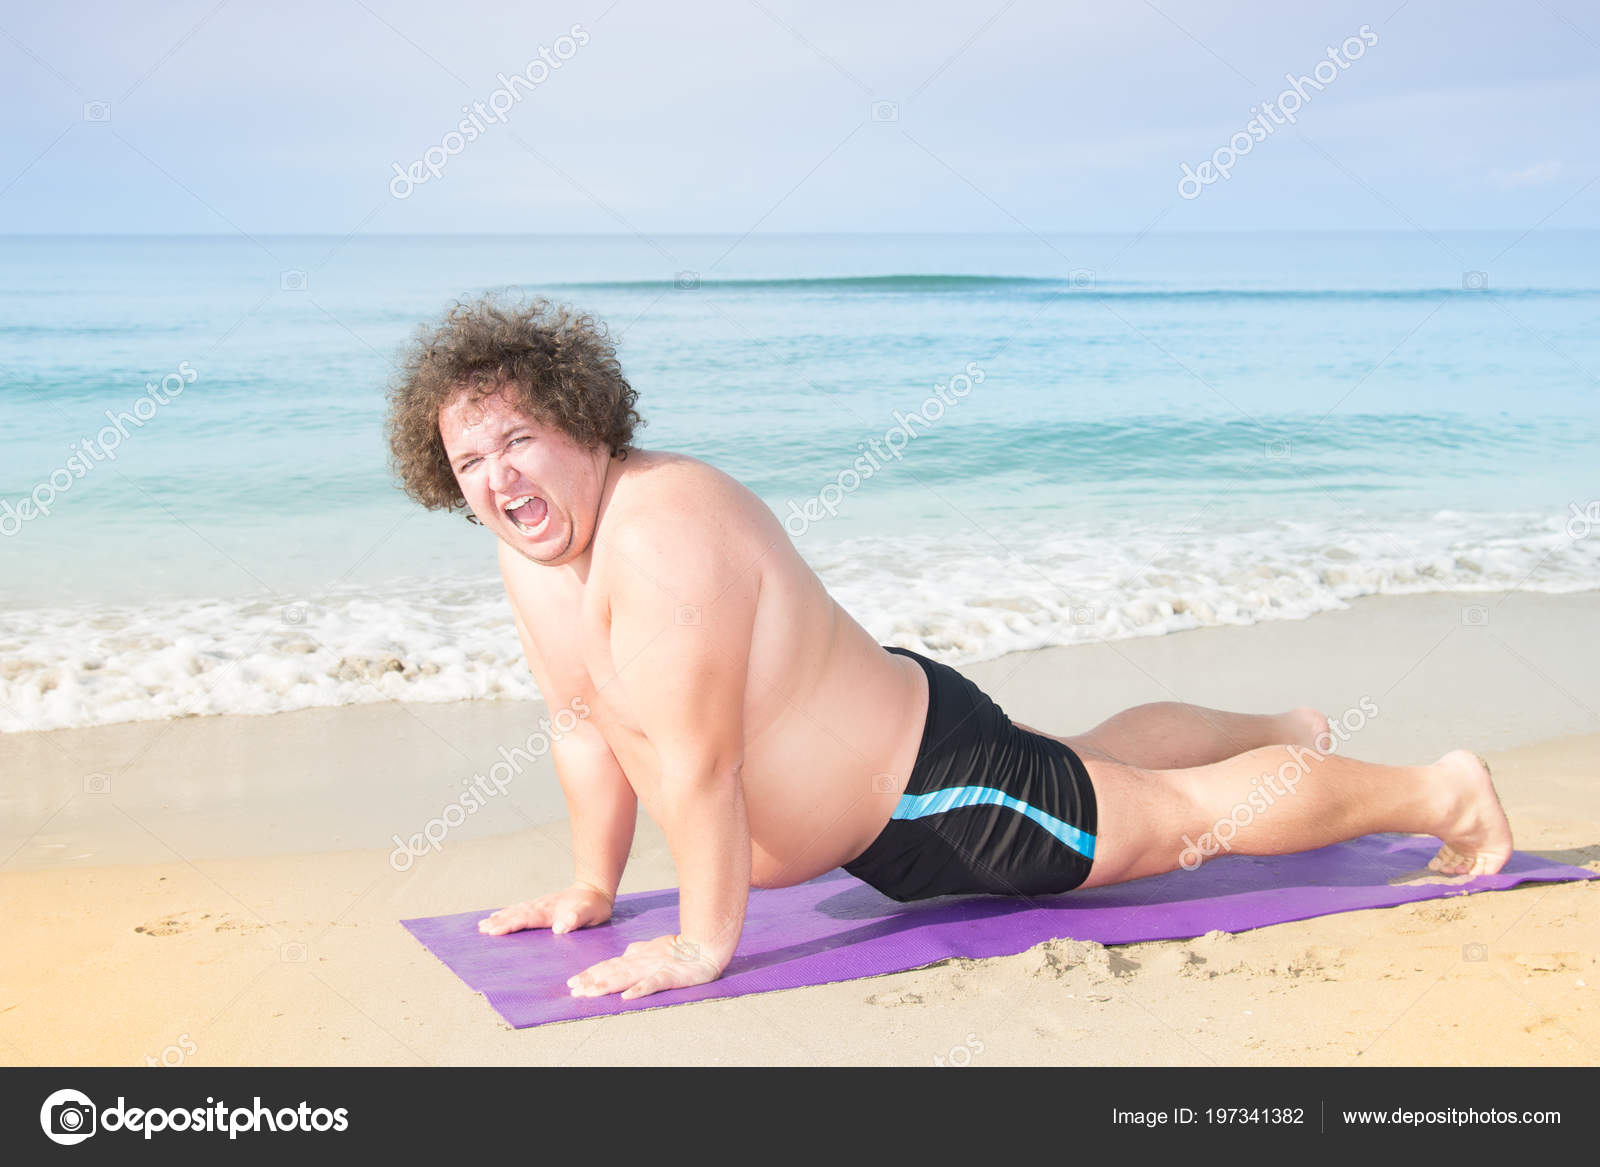 Funny Fat Man Sea Training Healthy Lifestyle Yoga Beach Stock Photo